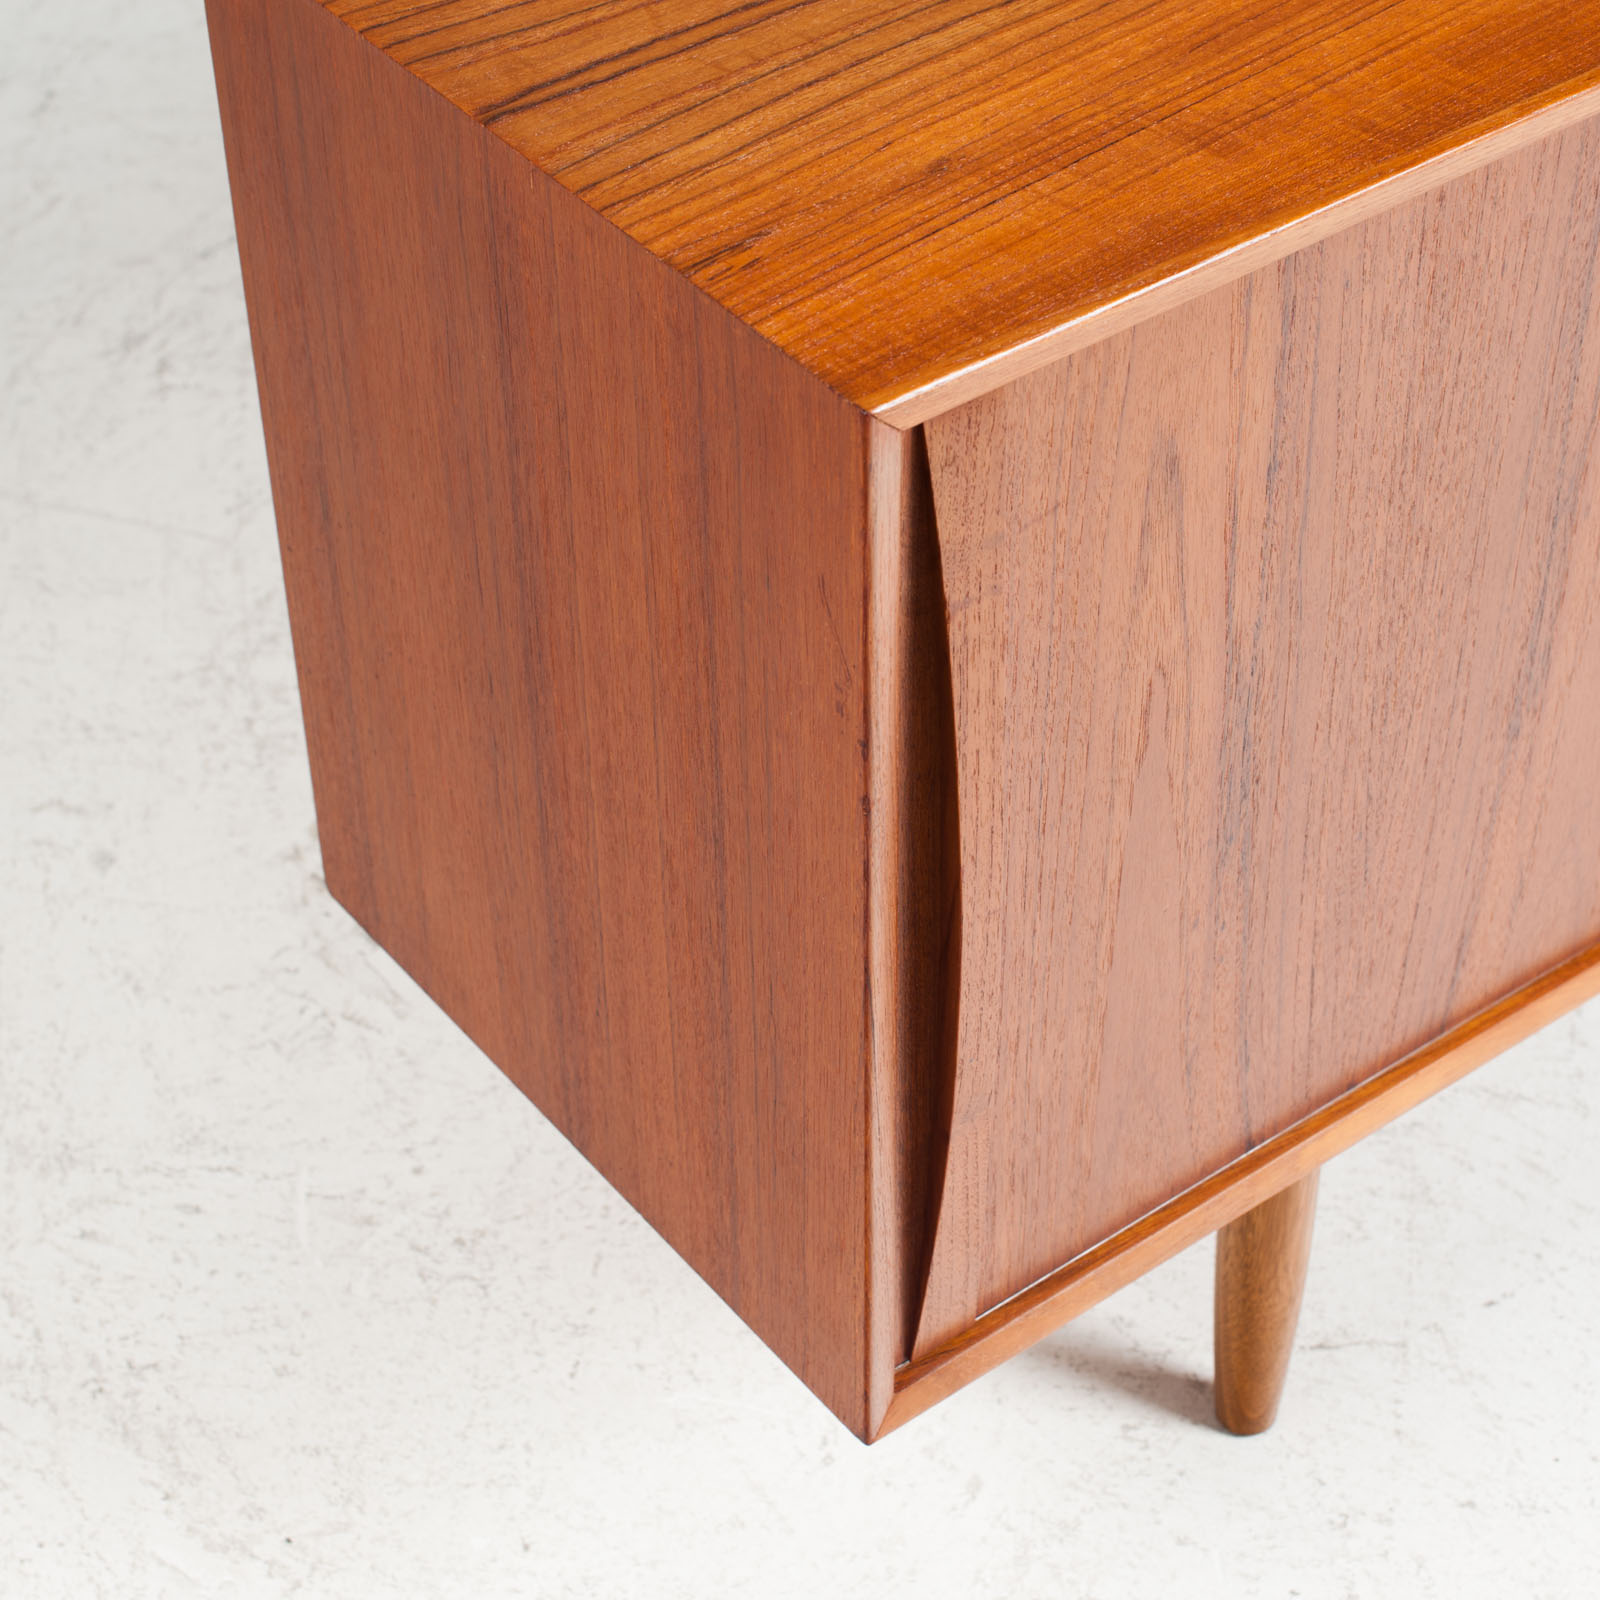 Sideboard In Teak With Two Sliding Drawers 1960s Denmark 05